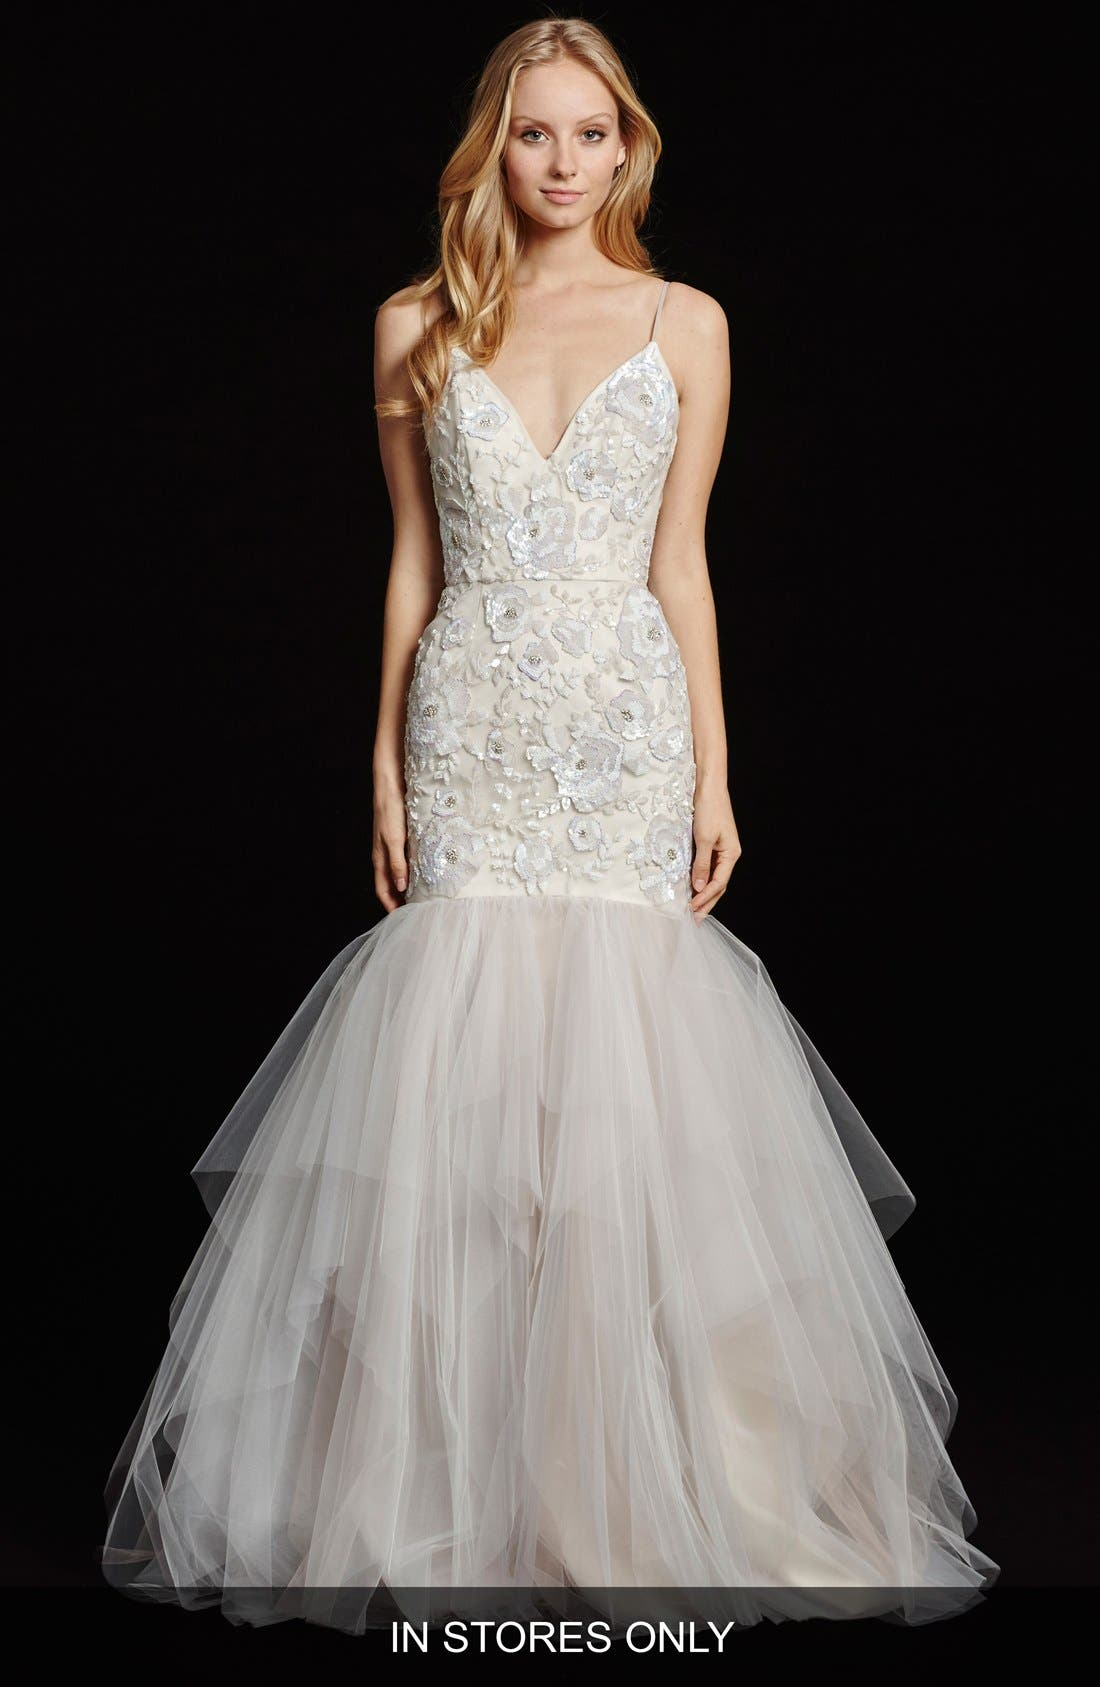 Hayley Paige 'Honor' Embellished V-Neck Mermaid Gown (In Stores Only)